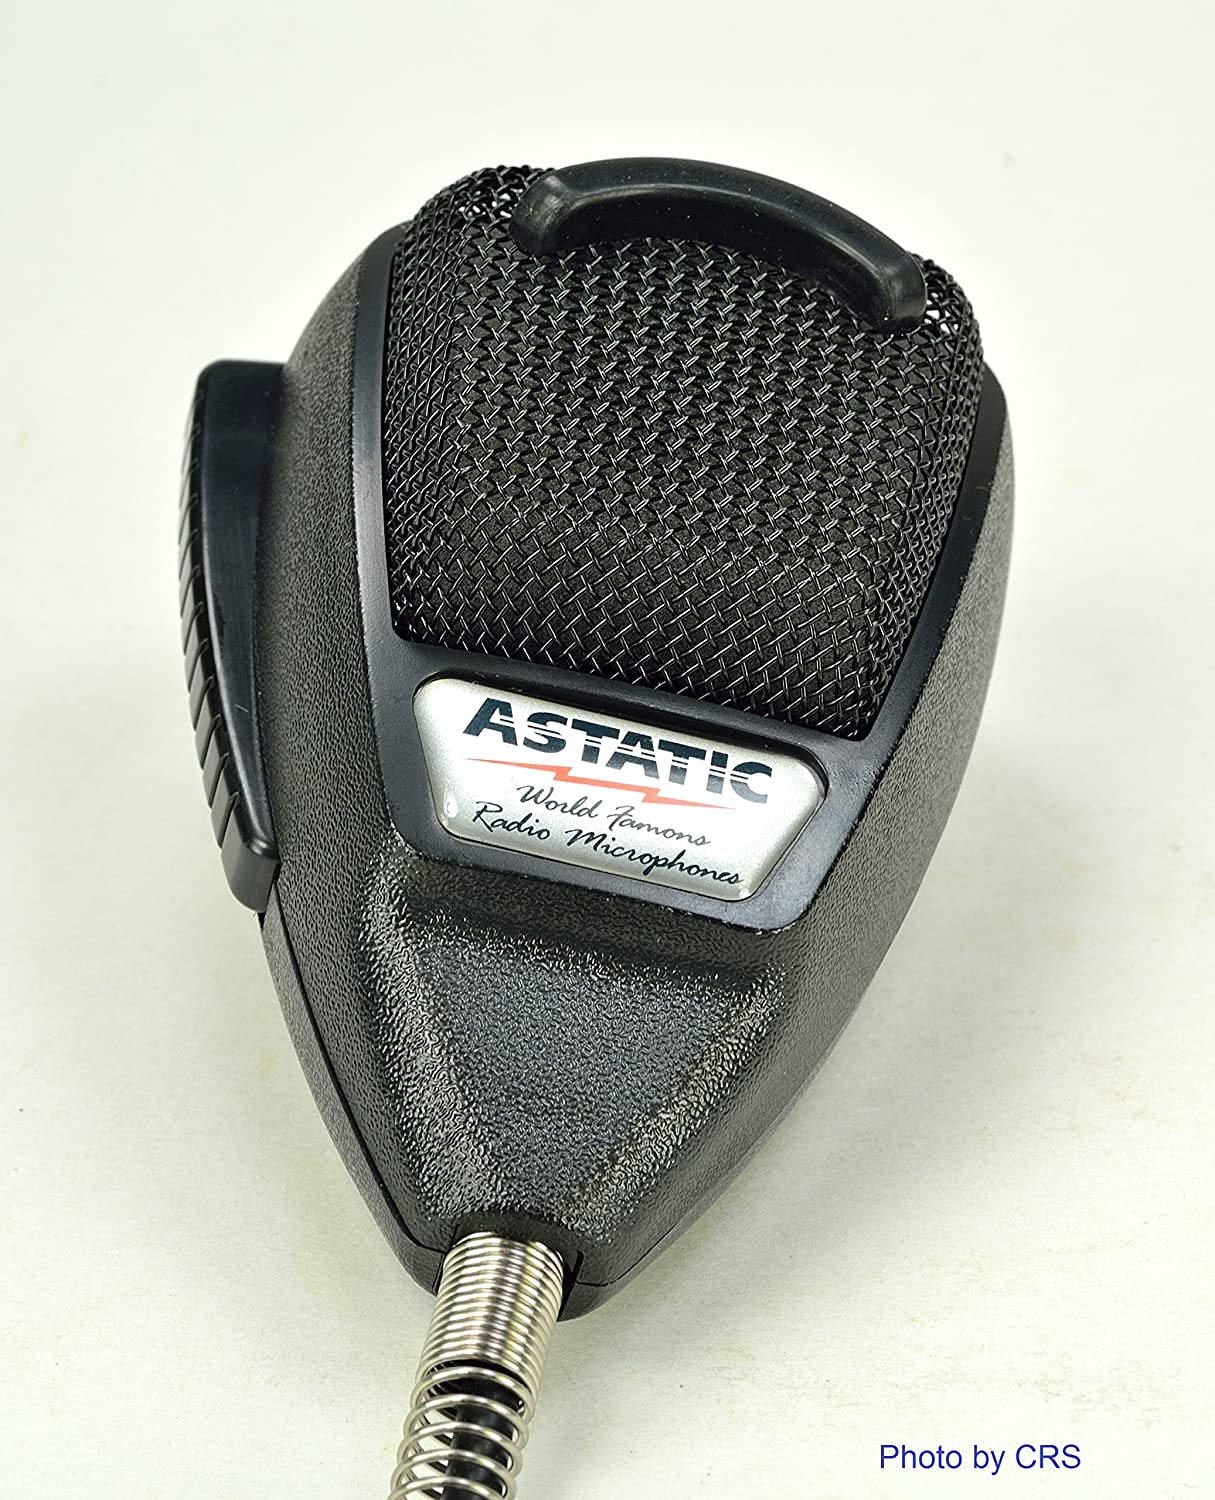 Amazon.com: Astatic 636L Noise Canceling Mic CB Radio 4 pin Cobra ...